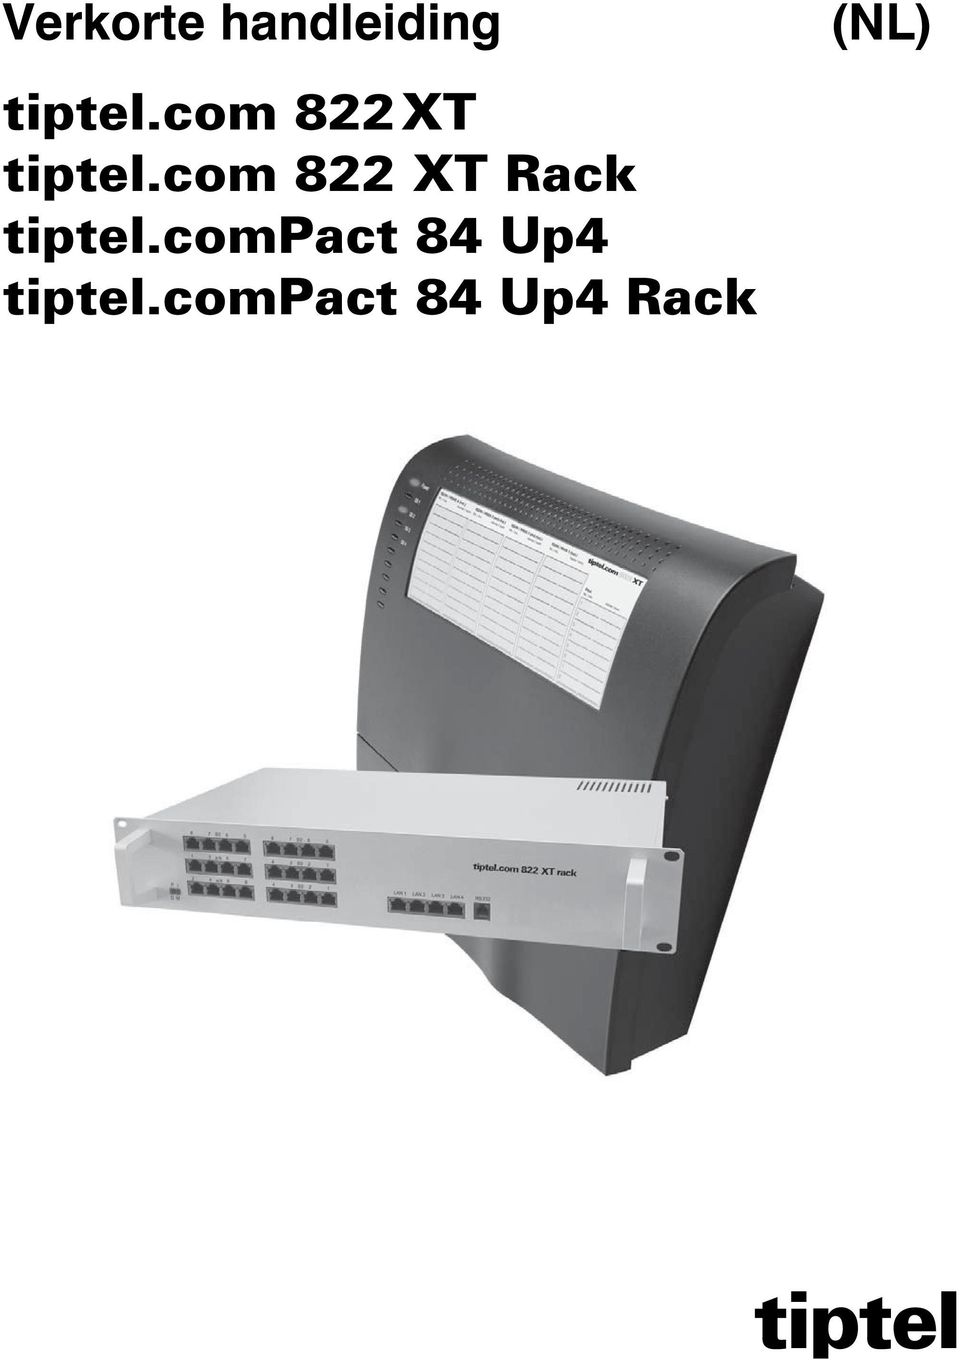 cmpact 84 Up4 tiptel.